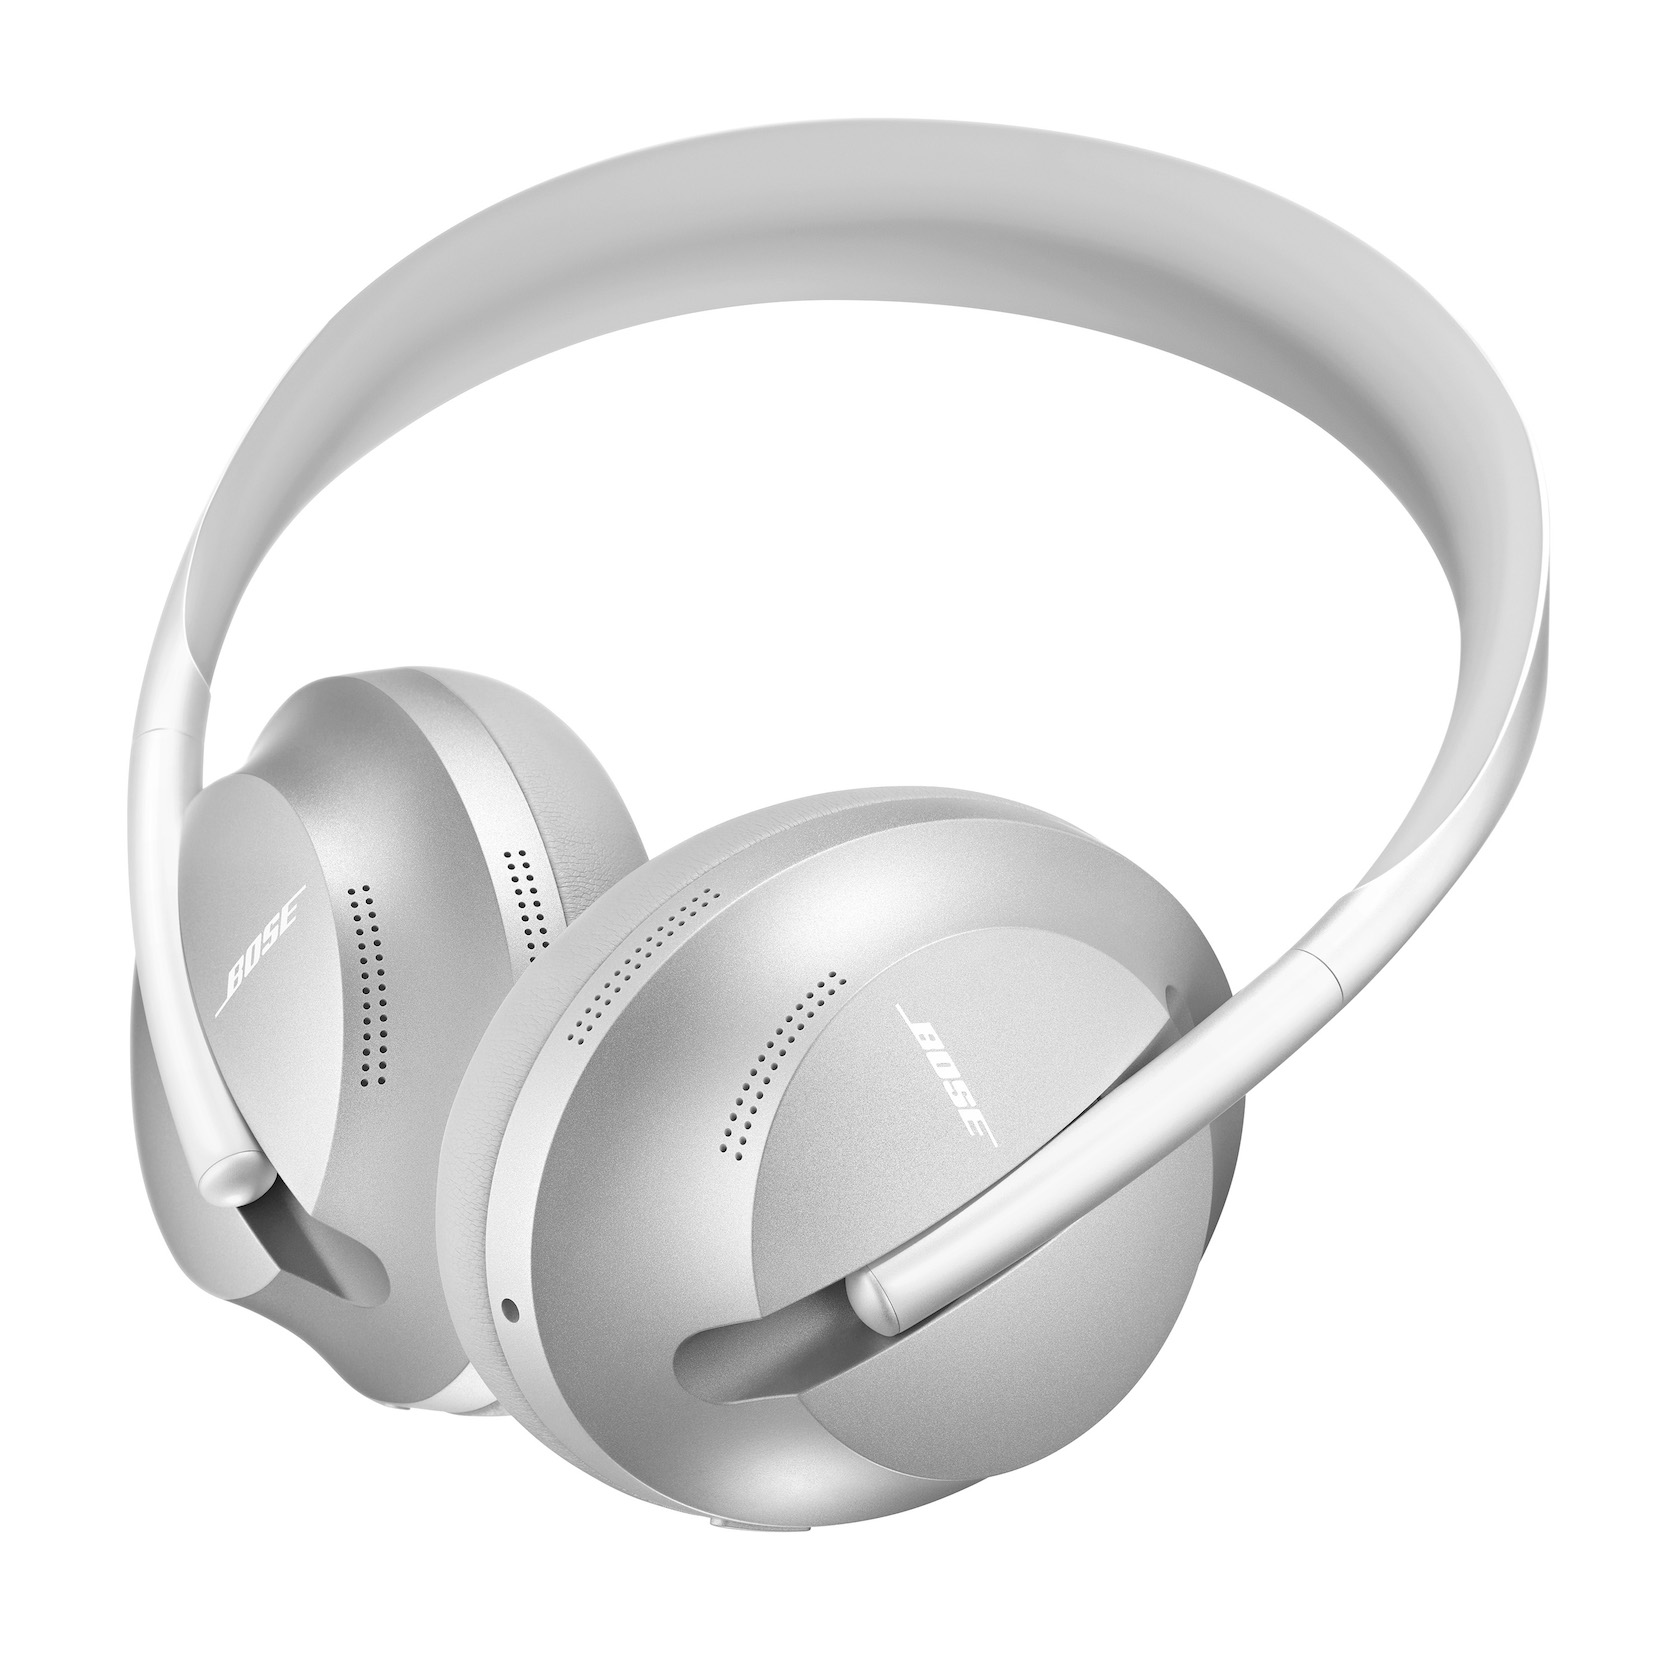 68d9a36d3d3 However it's not hard to imagine that features like integrated smart  assistants, adjustable noise cancellation levels, and smart control over  media playback ...